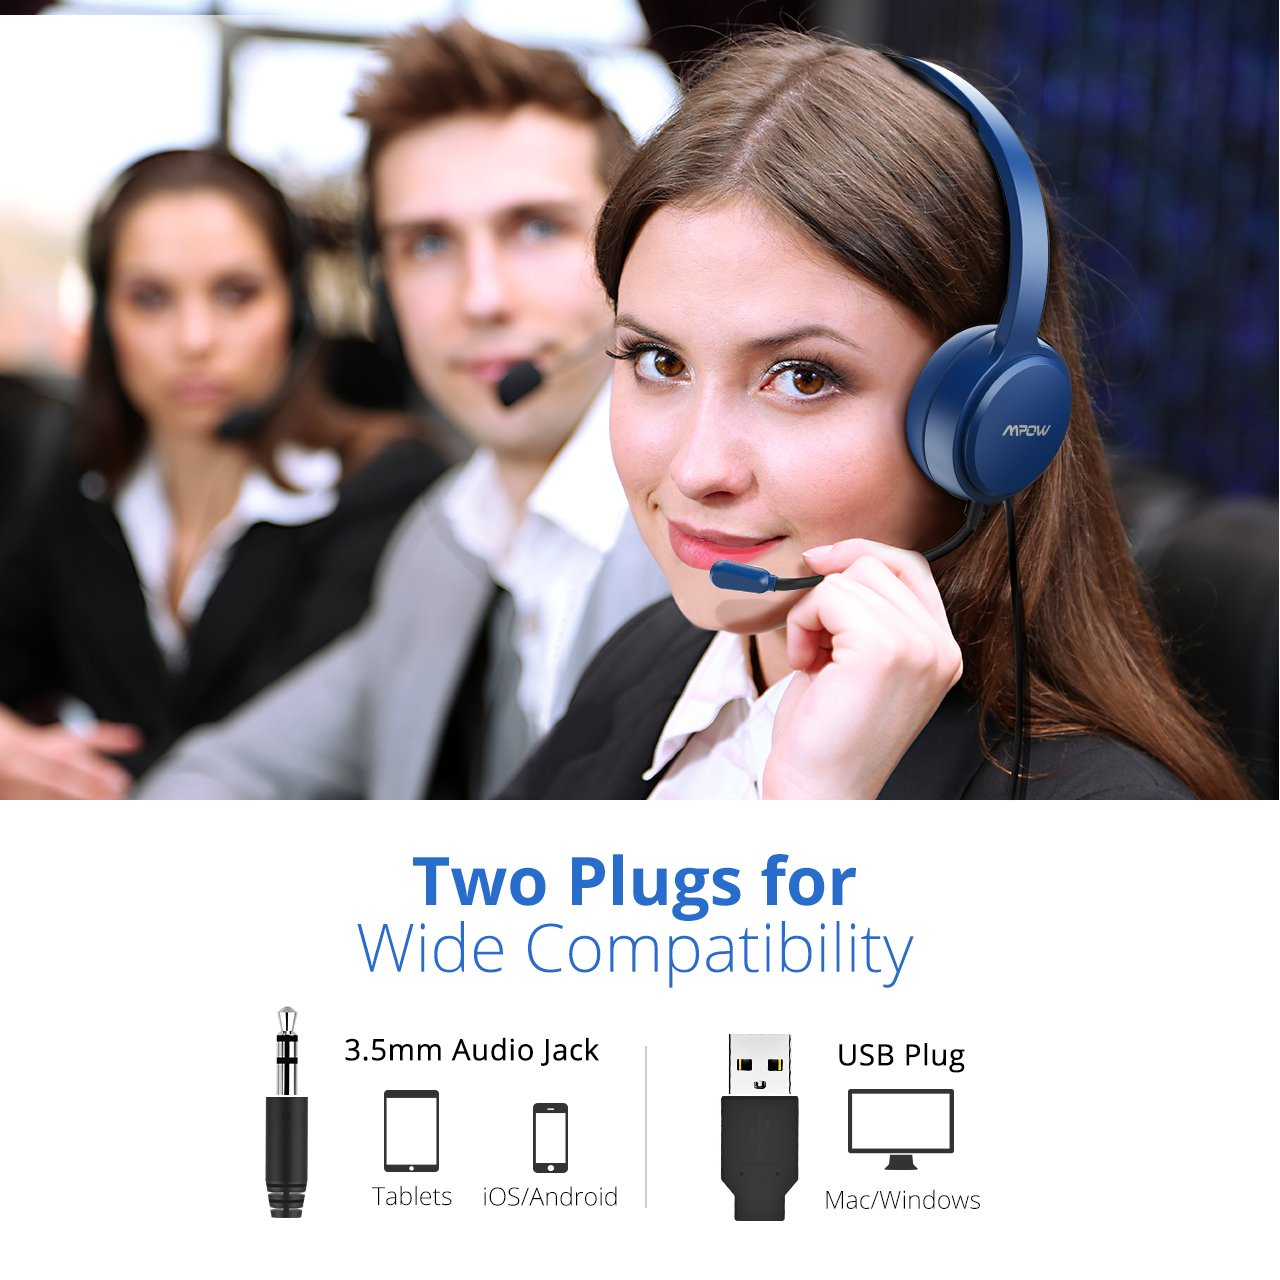 Mpow 071 USB Headset/3.5mm Computer Headset with Microphone Noise Cancelling, Lightweight PC Headset Wired Headphones, Business Headset for Skype, Webinar, Phone, Call Center by Mpow (Image #6)